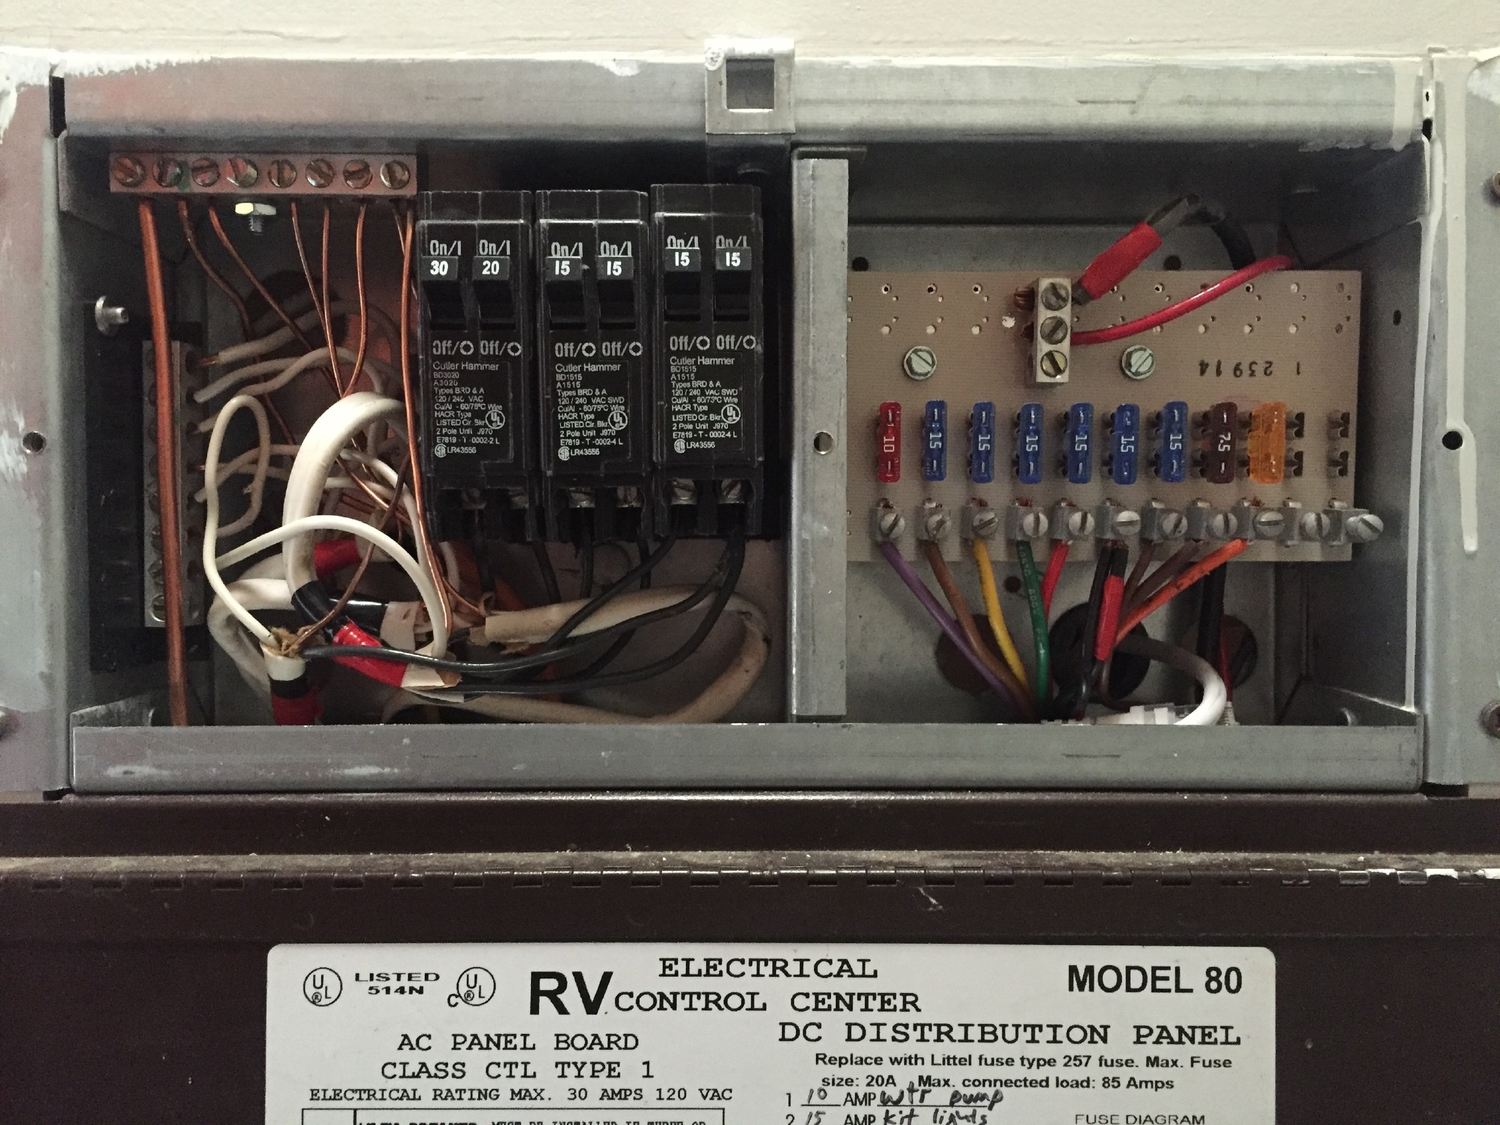 Electrical System Design Part 2 Loads Live Small Ride Free Old Style Air Conditioner Fuse Box Sustainable Solar Powered Rv